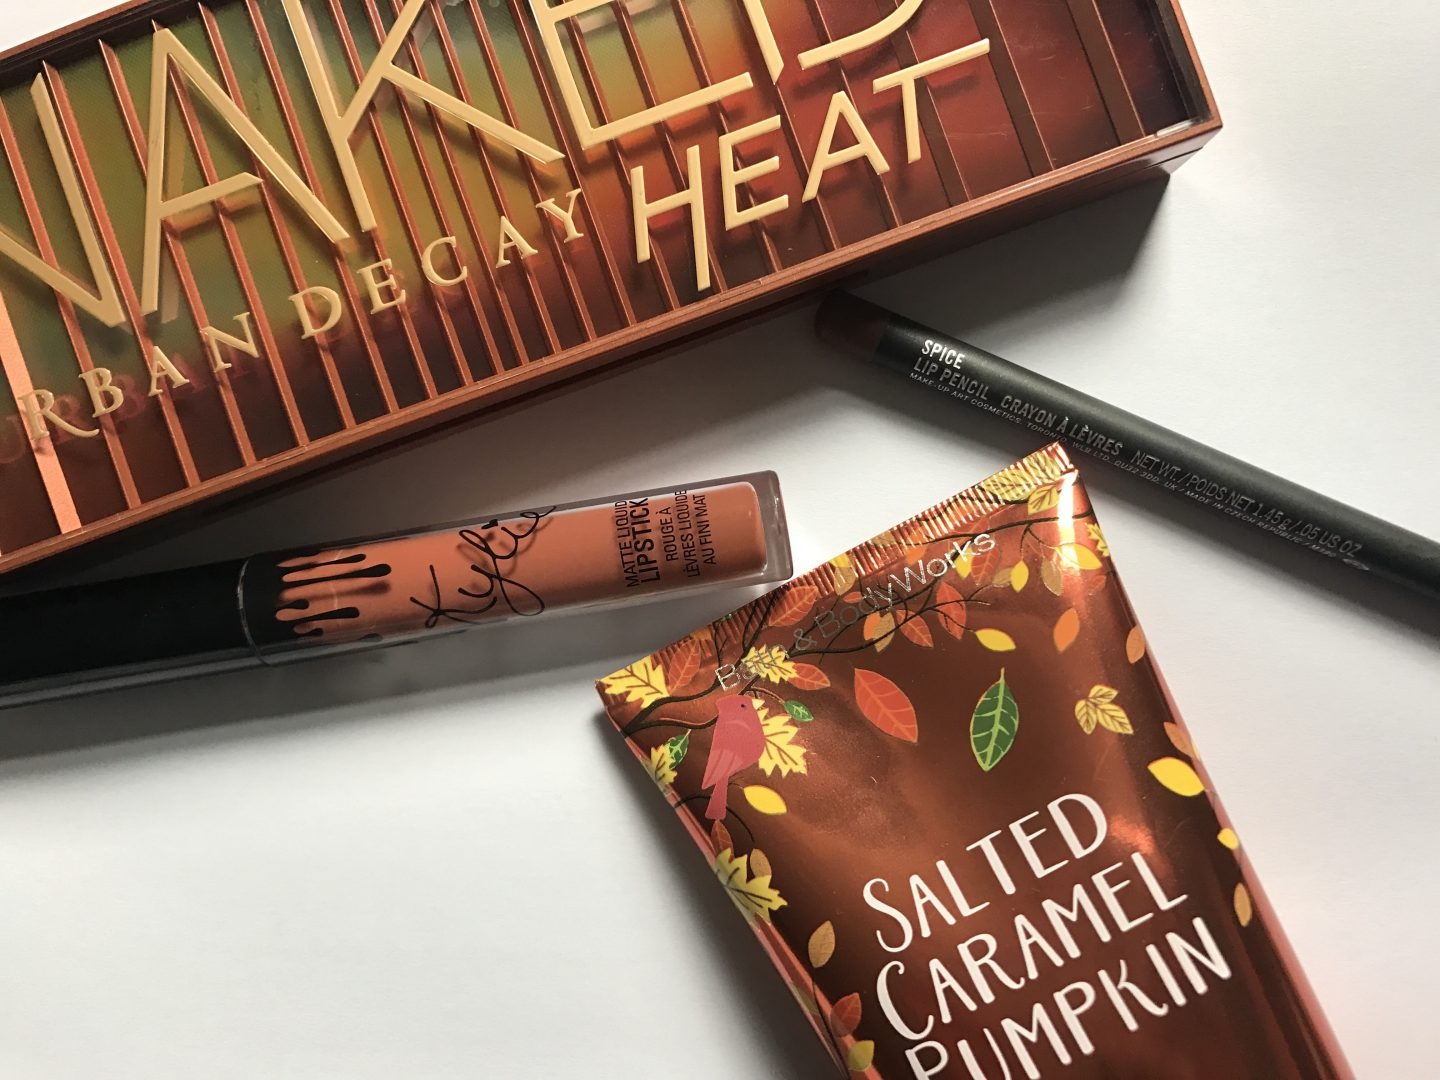 Naked Heat, Mac, Spice, Kylie Ginger